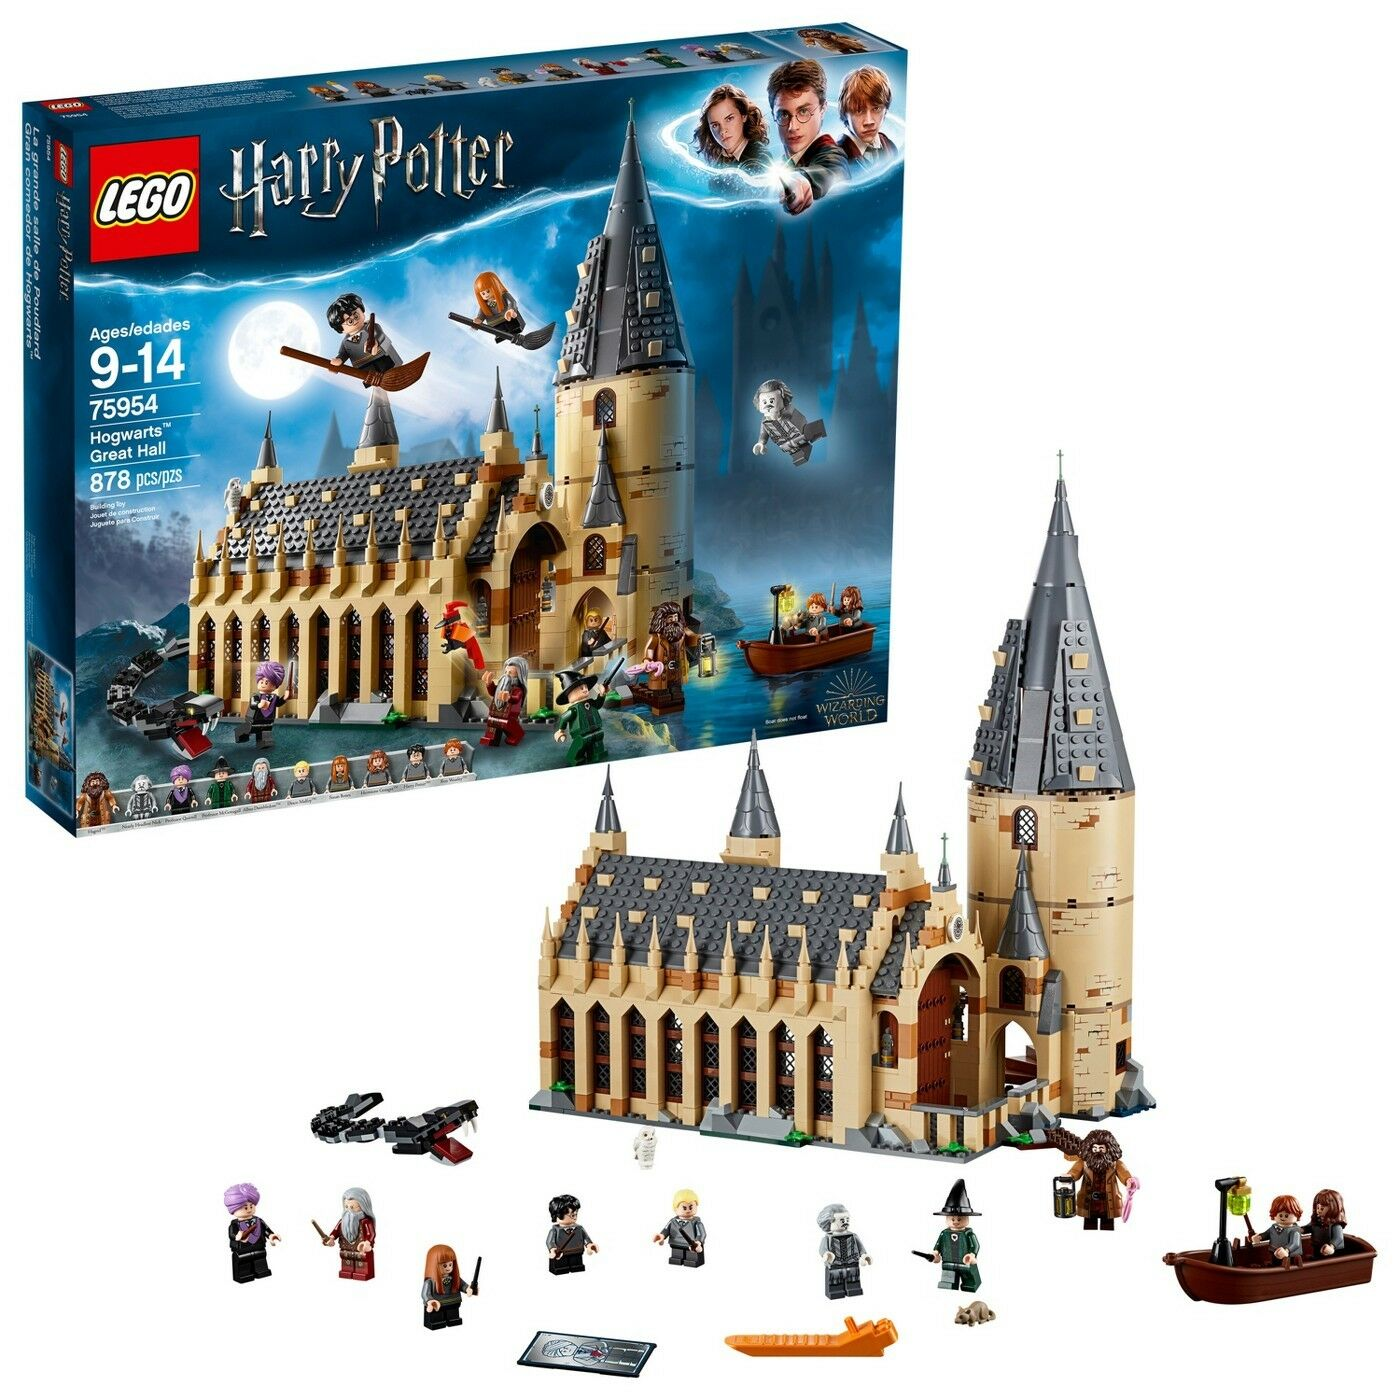 LEGO Harry Potter Hogwarts Great Hall 75954 New 2018 878 Pieces